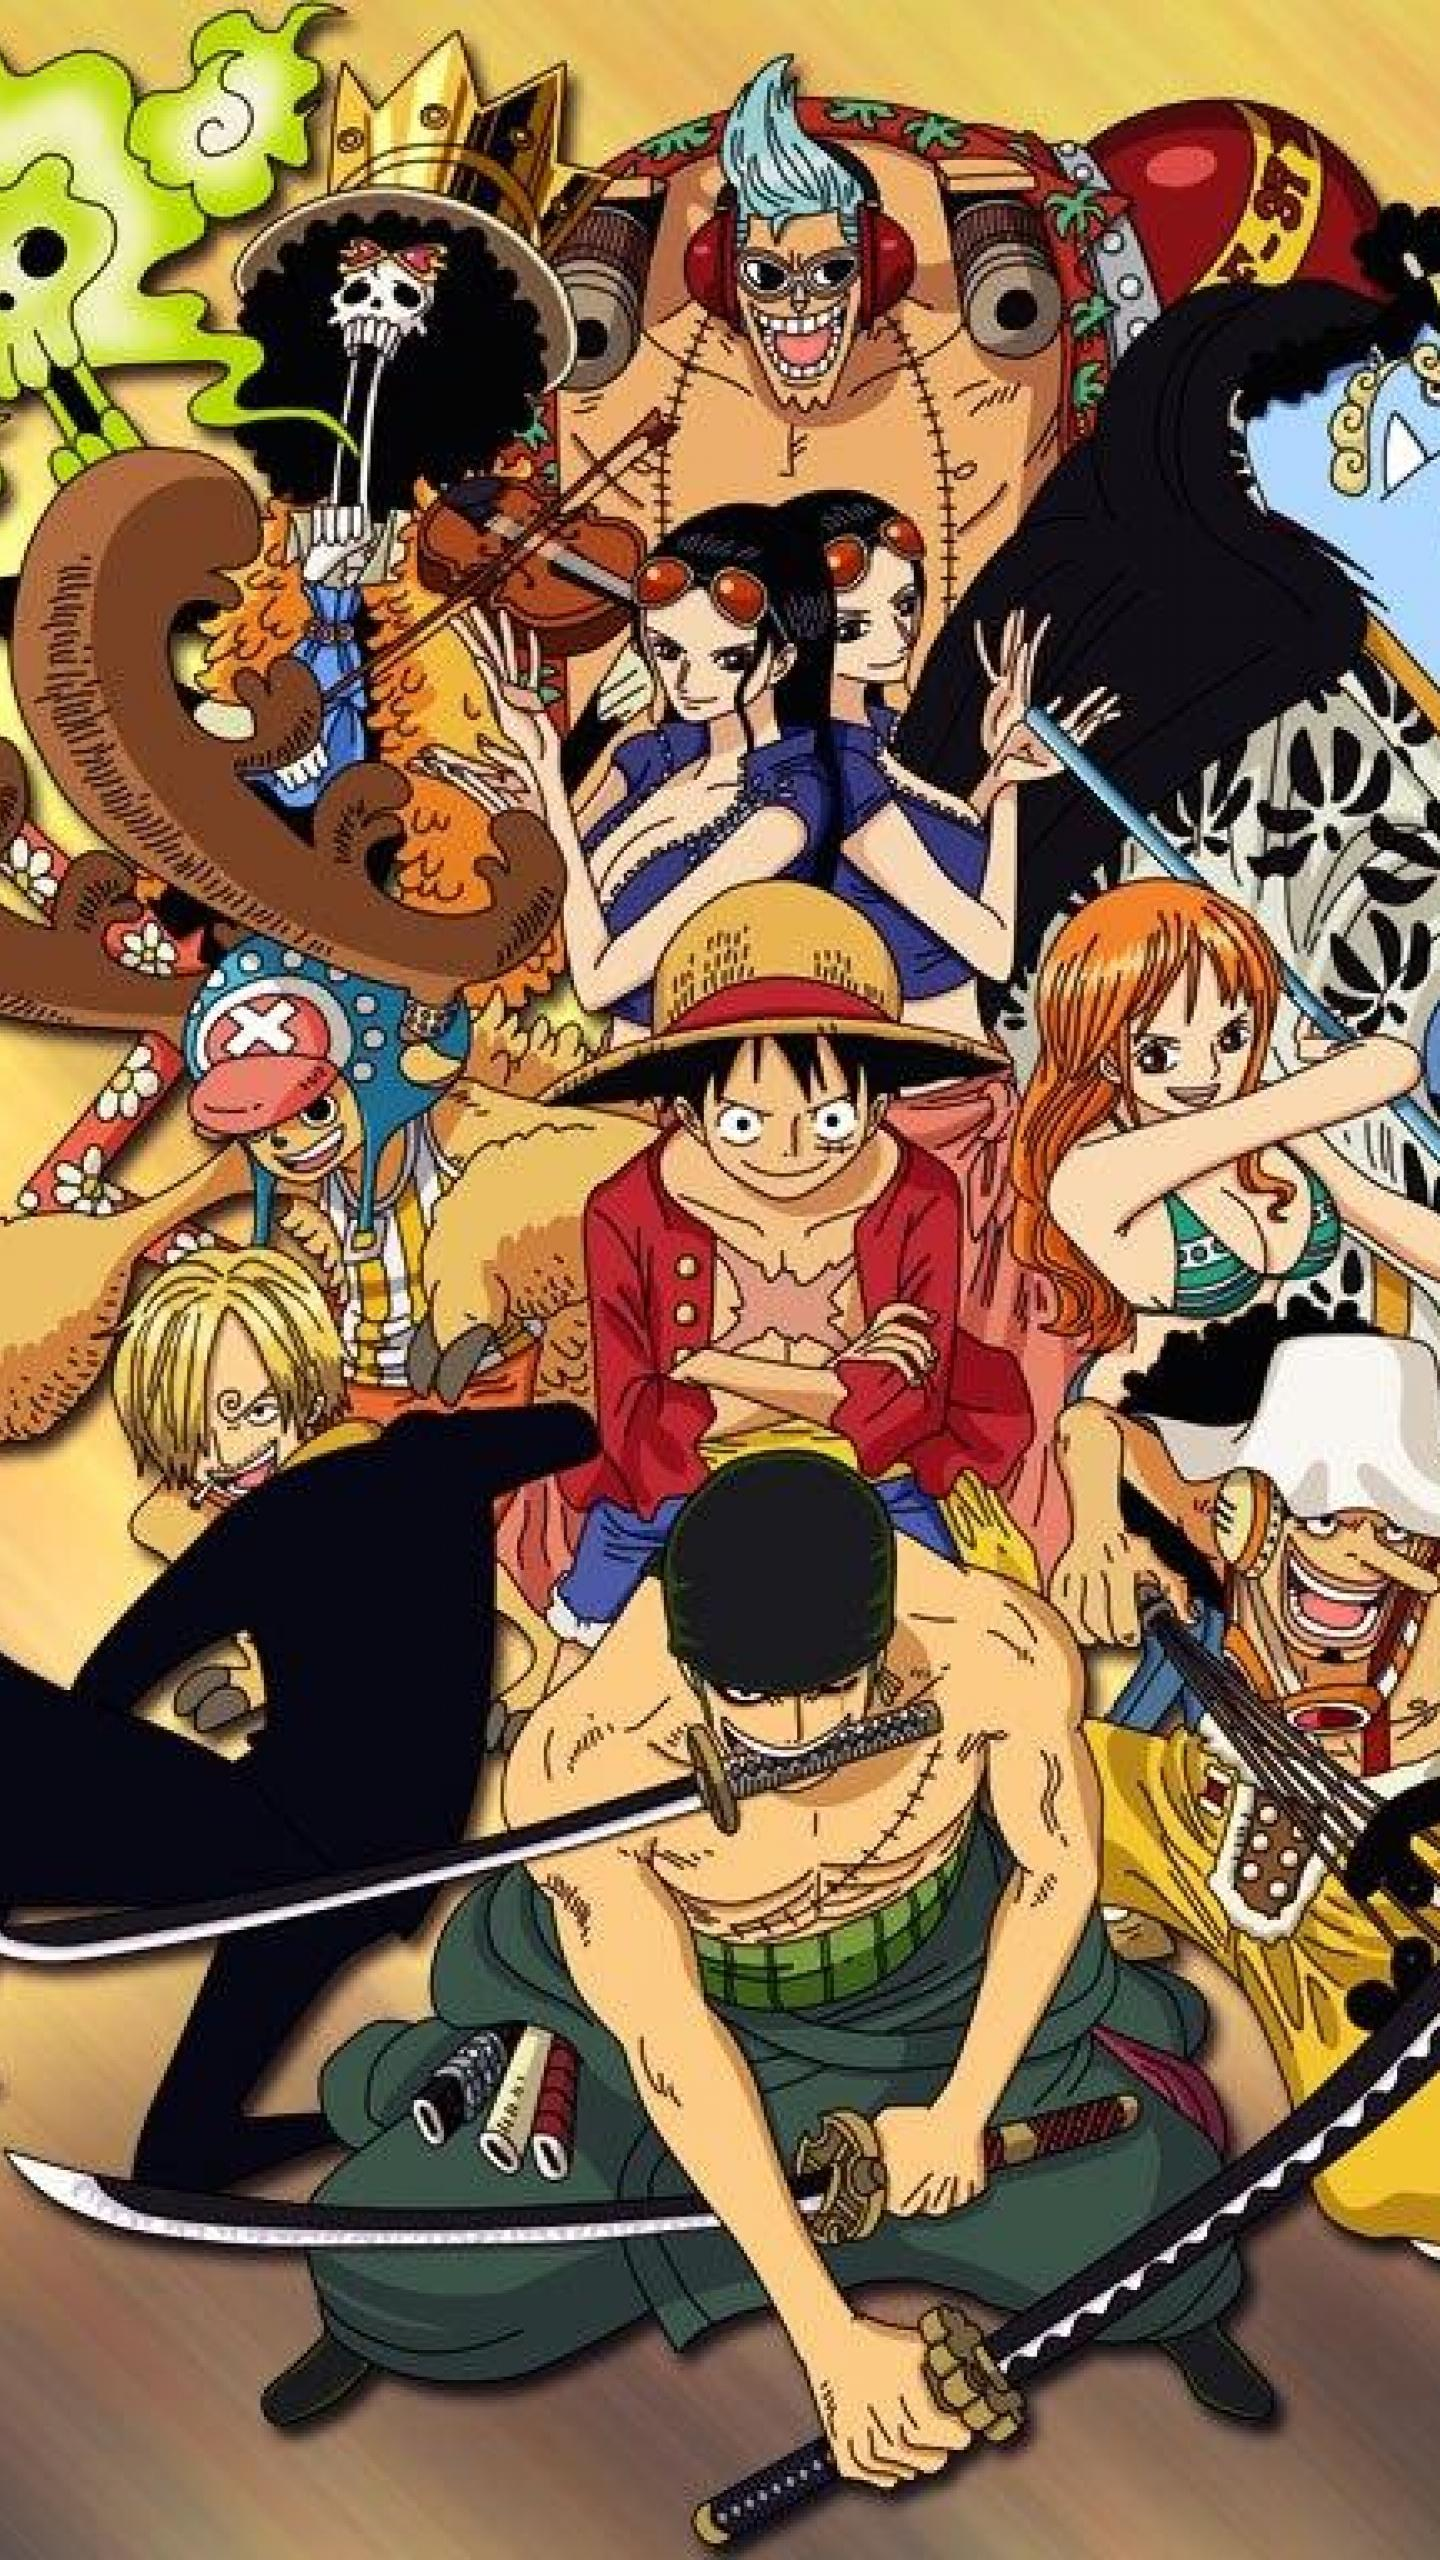 Wallpaper Pemandangan: One Piece Wallpaper For Oppo